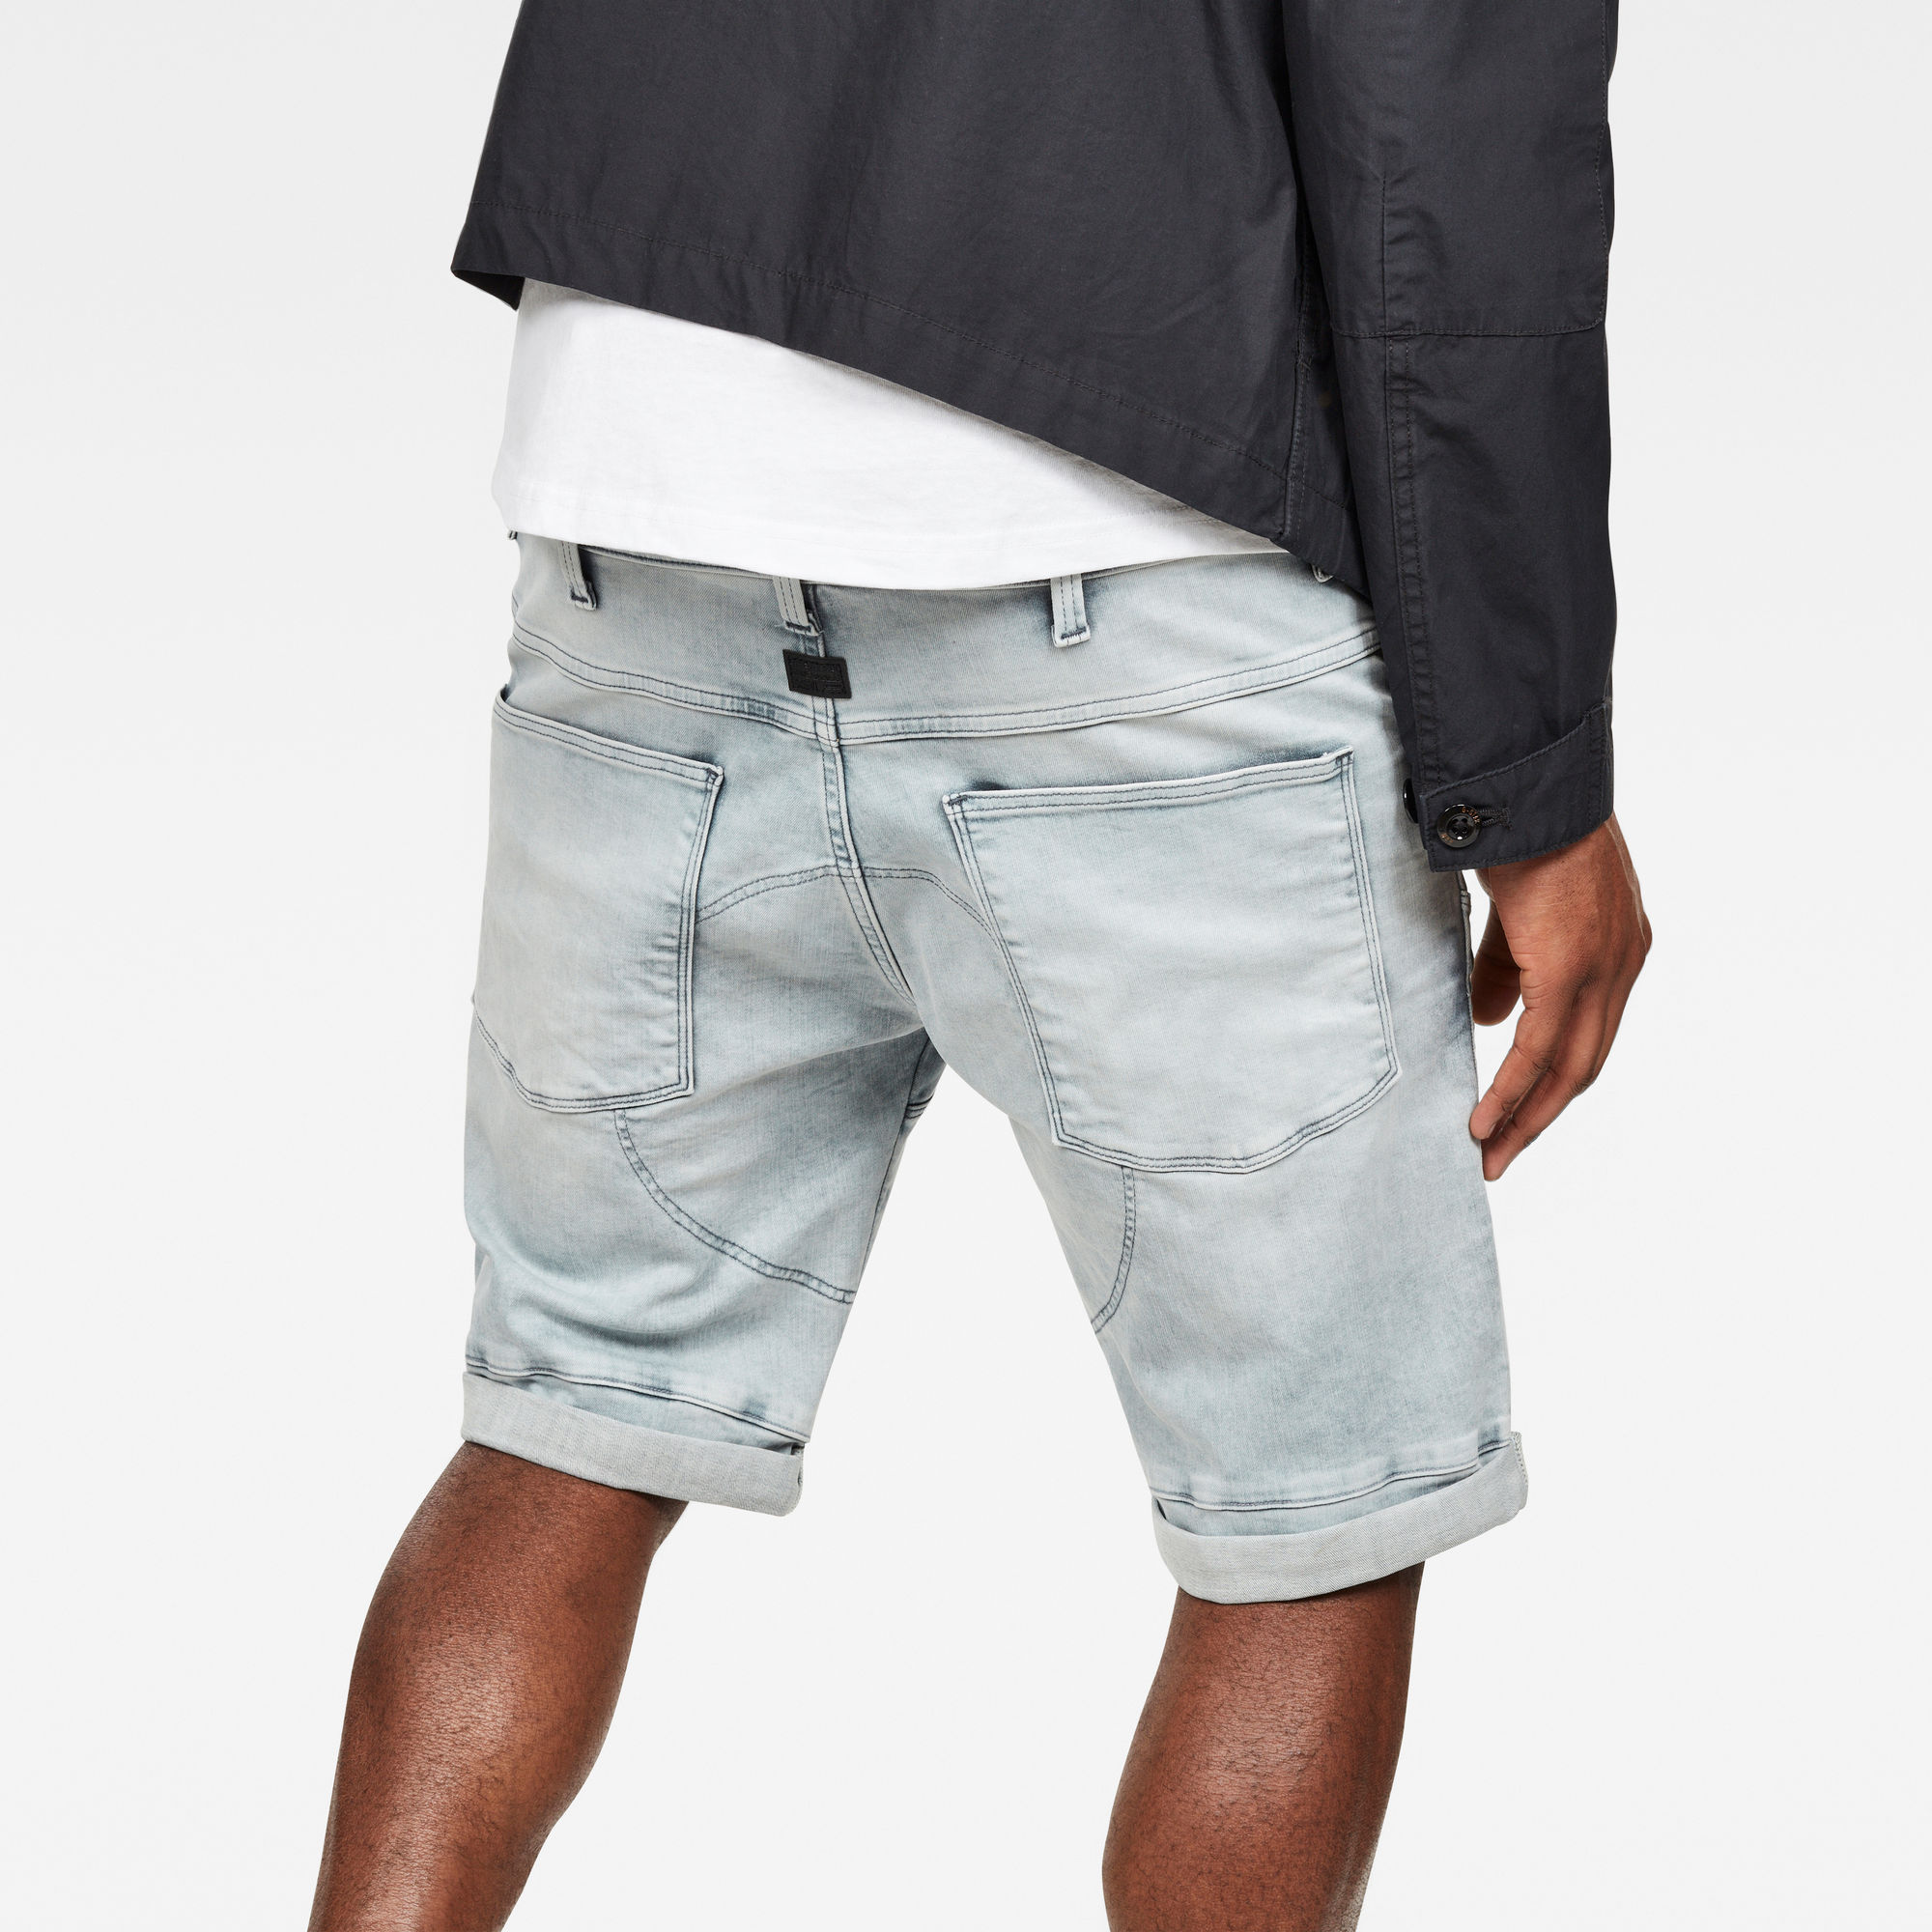 G-Star RAW 5621 3D Short